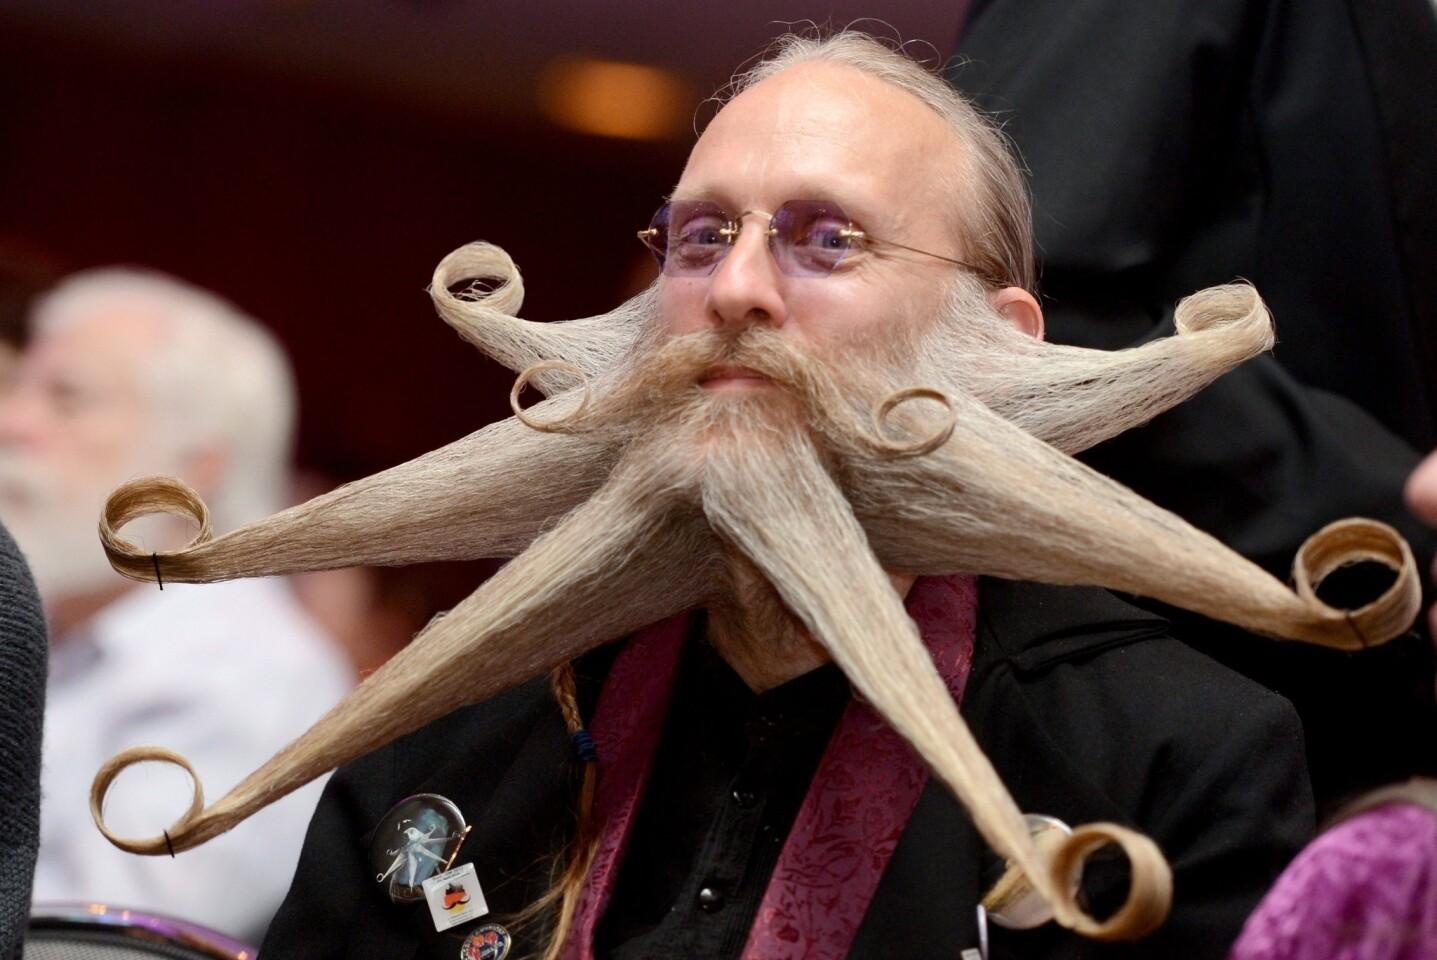 Armin Bielefeldt's curled beard tips won over judges and landed Bielenfeldt in first place for full beard freestyle.